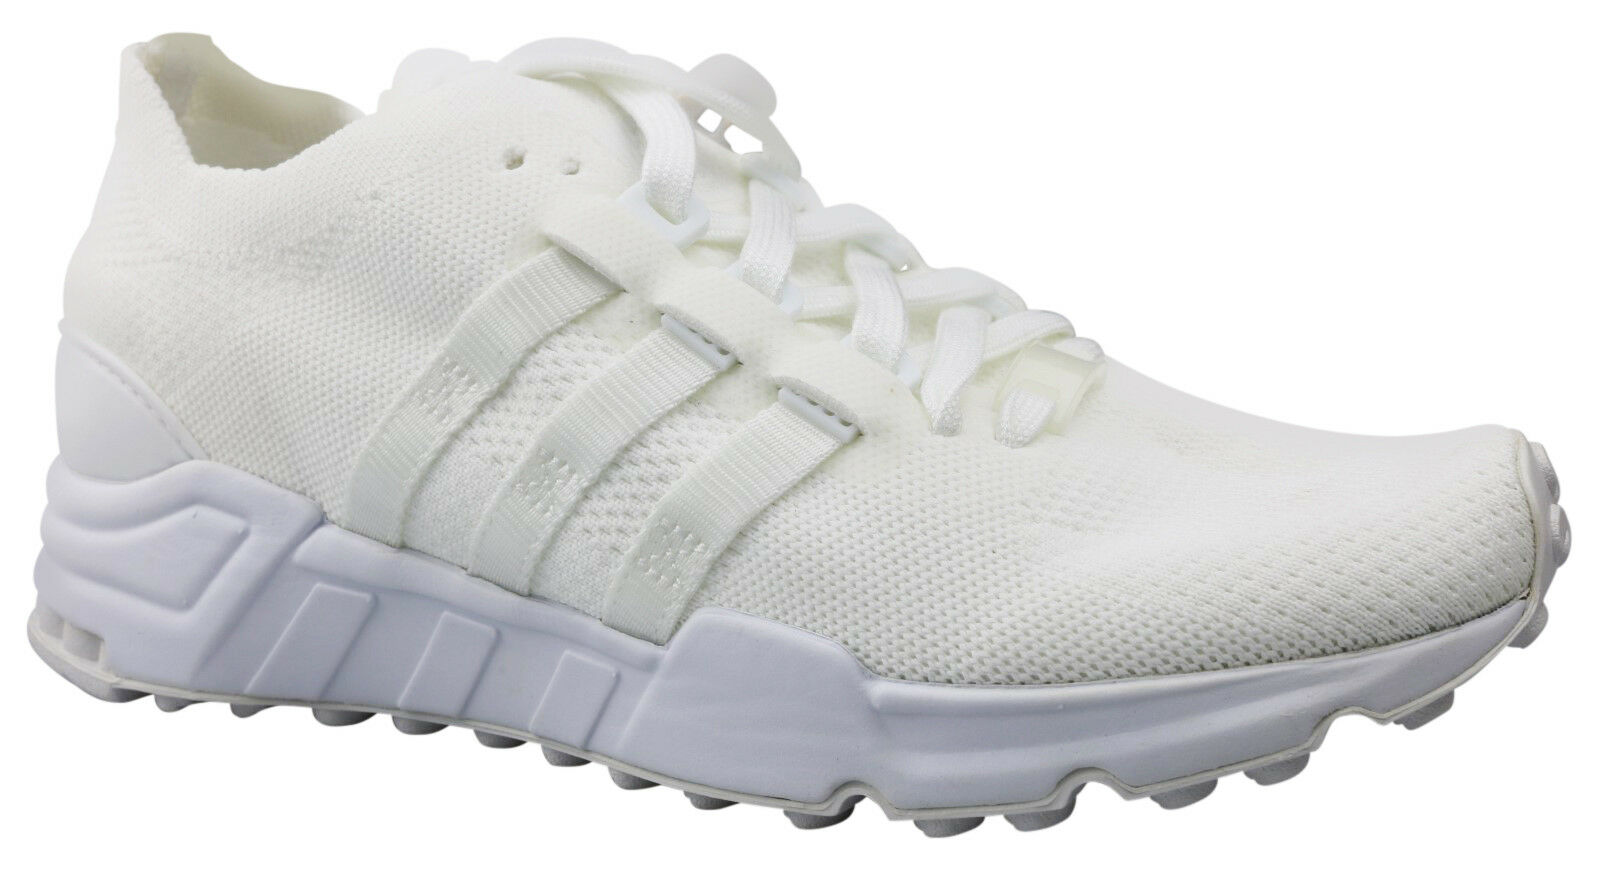 uk availability 77599 b1e07 Adidas equipHommes t t t support 93 Primeknit Sneaker Chaussures Blanc  s79925 taille 40 - 43 NEUF 1eacc3